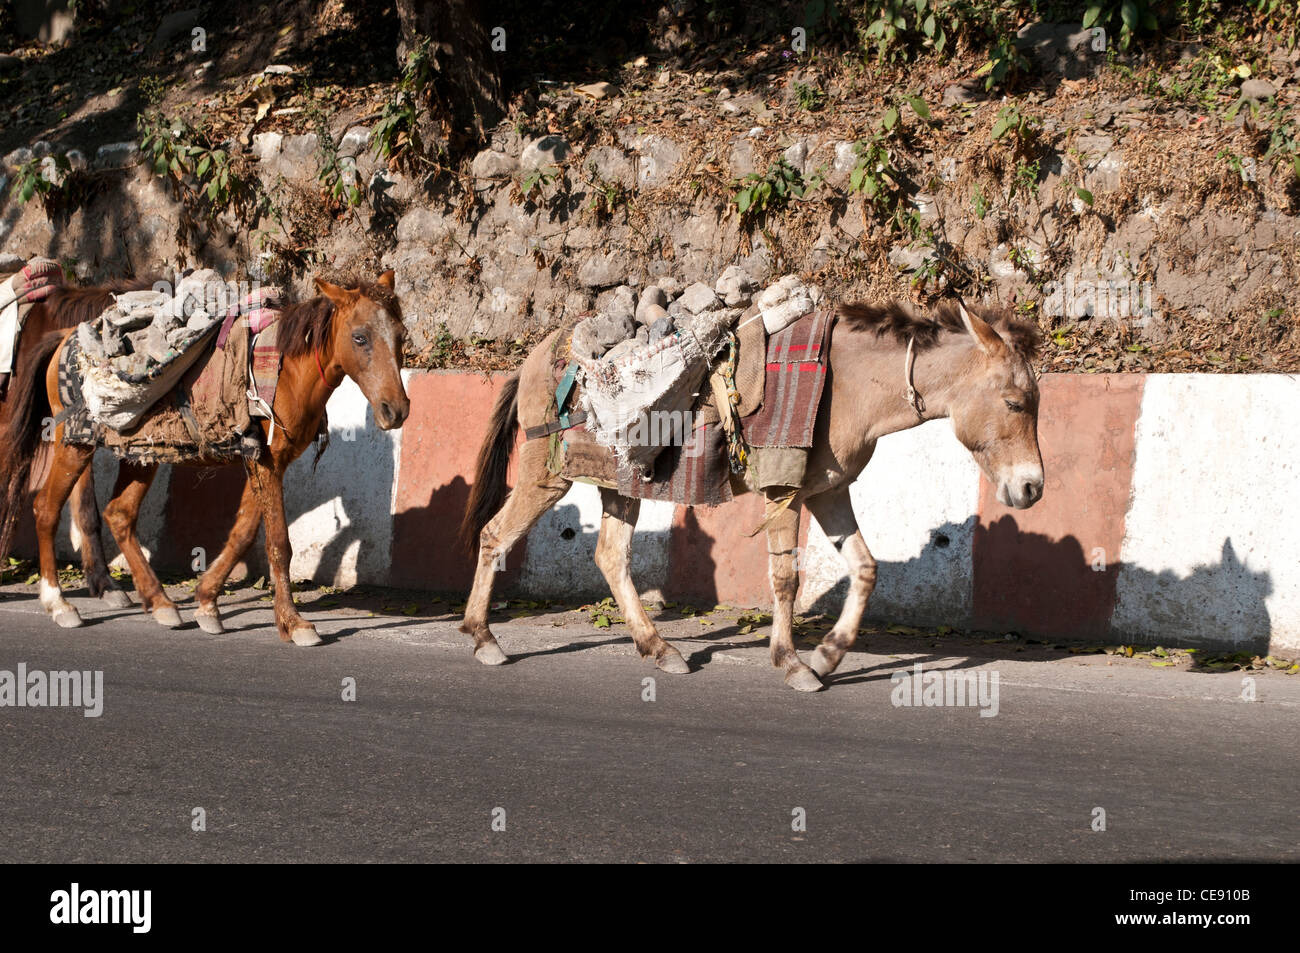 Poor horses carry stones from the riverbed of the Ganges for building sites, Rishikesh, Uttarakhand, India - Stock Image